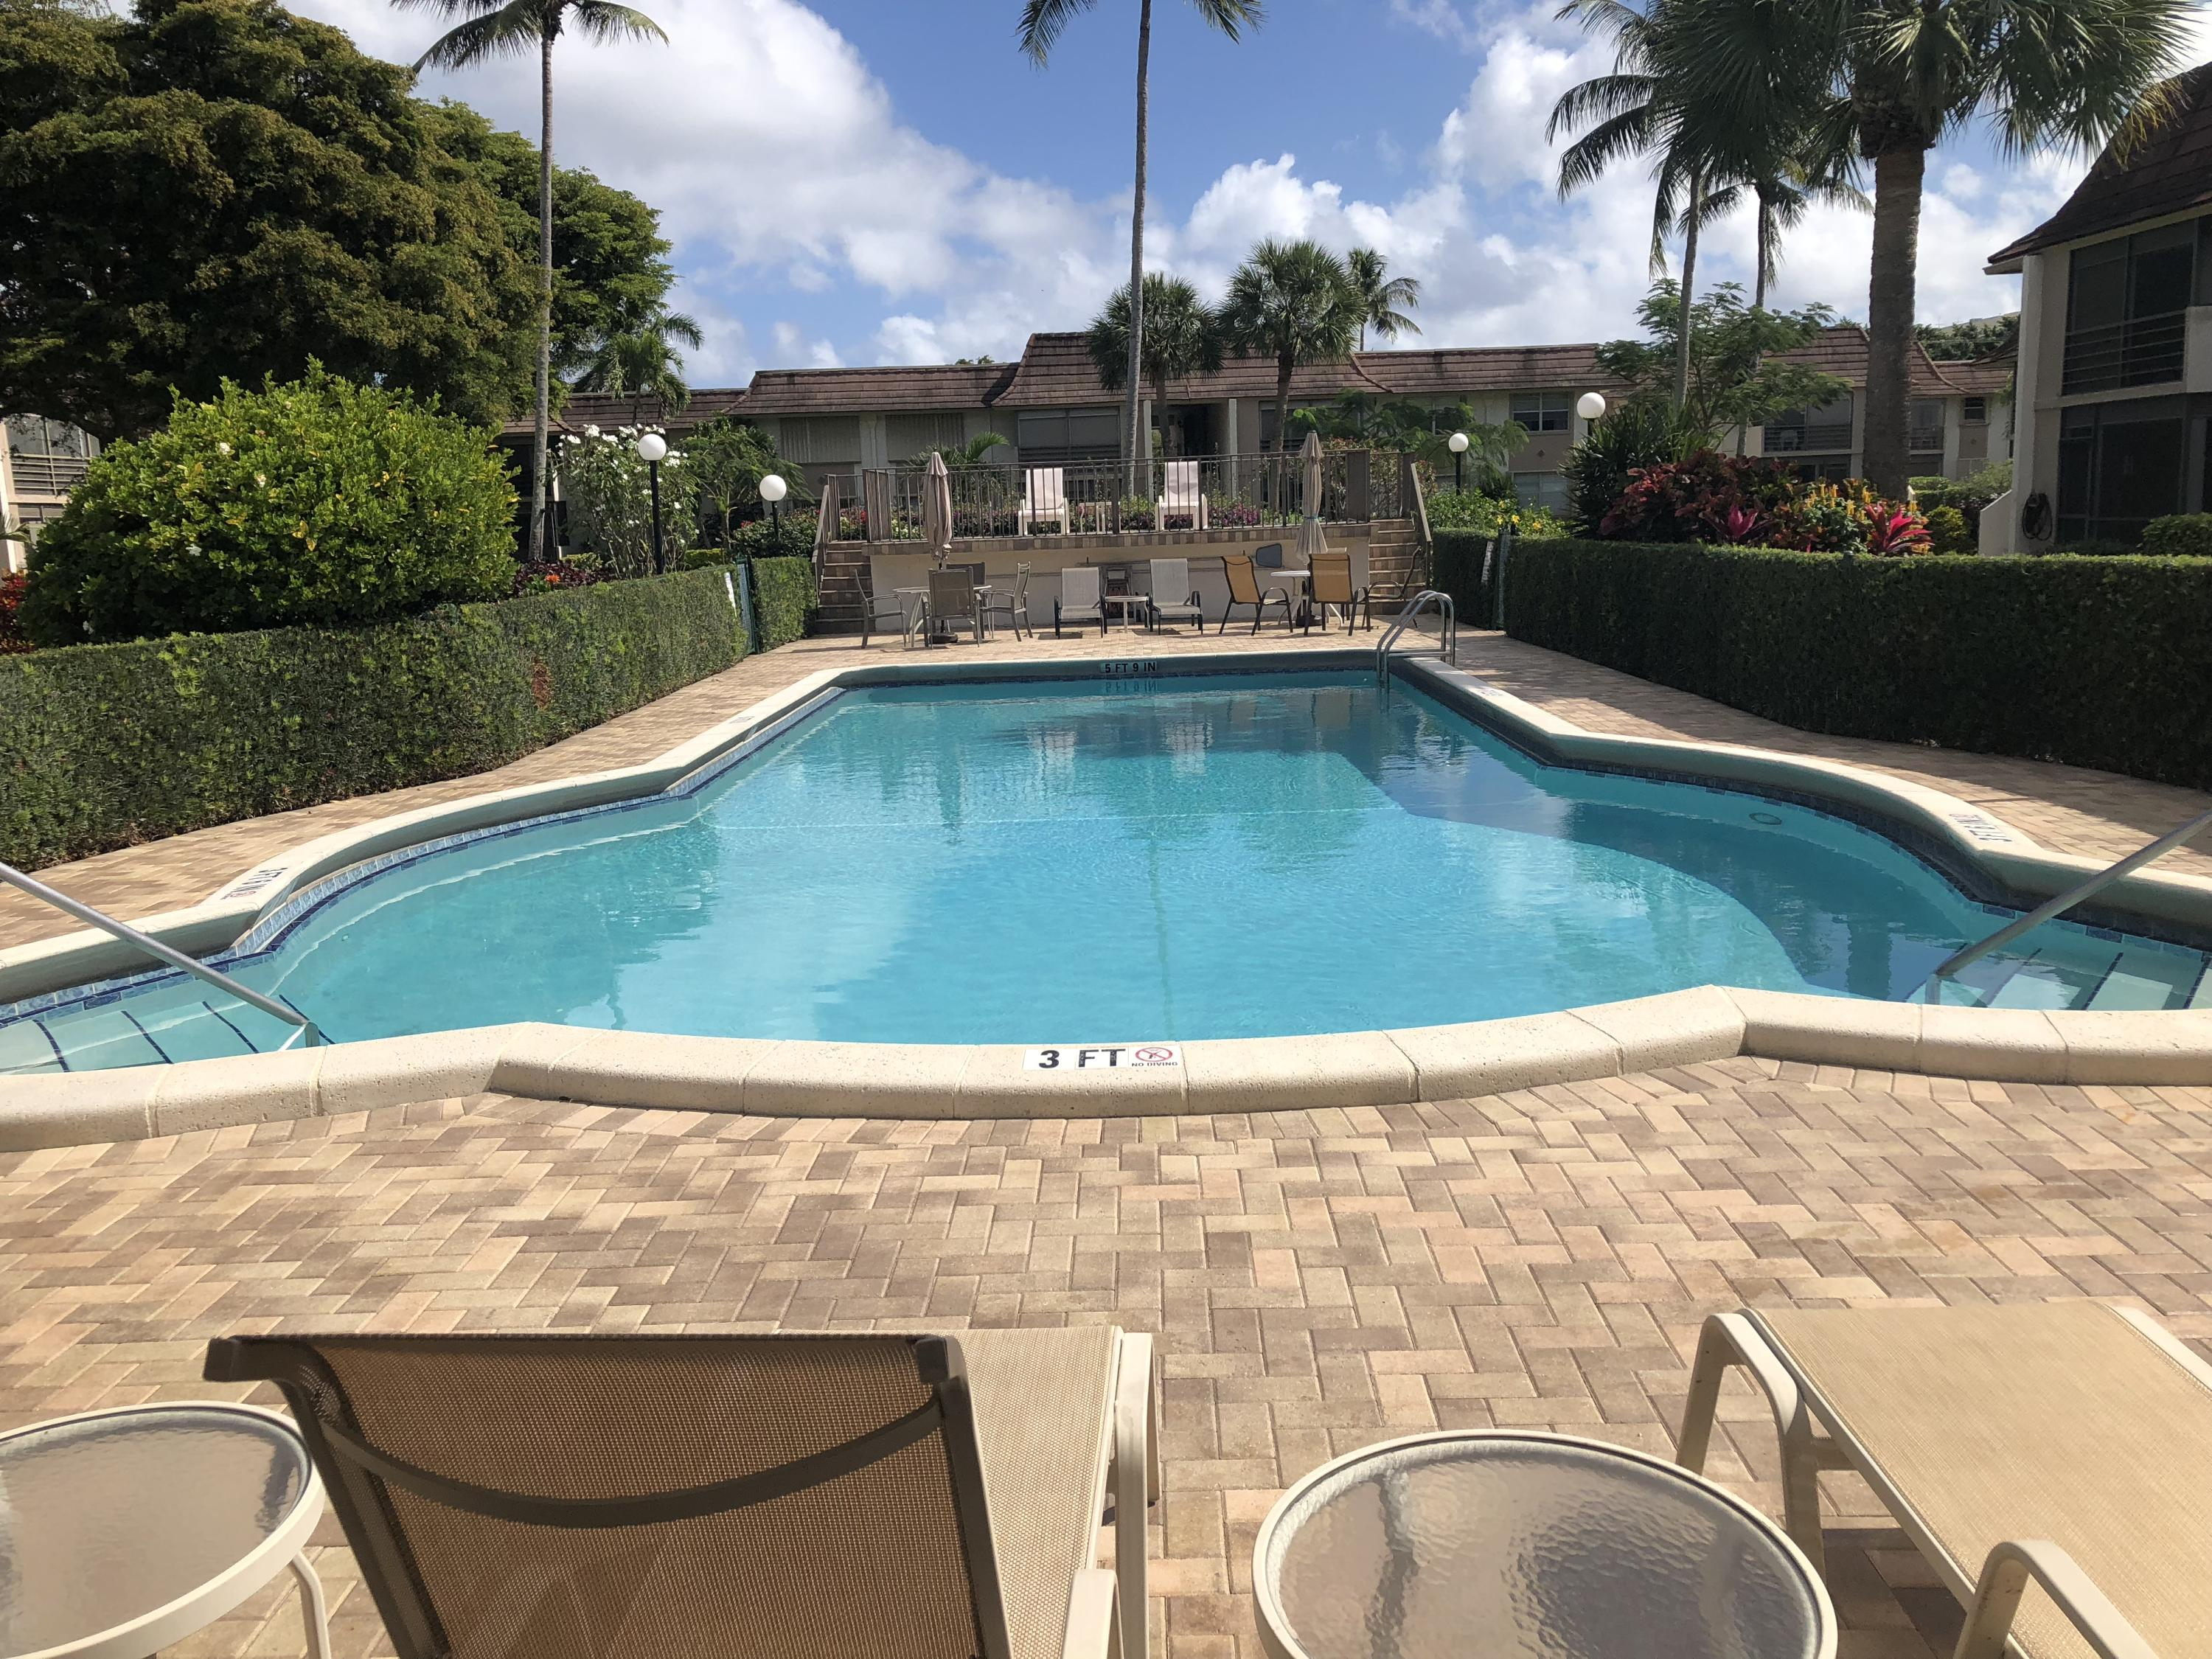 1050 13th Street, Boca Raton, Florida 33486, 2 Bedrooms Bedrooms, ,2 BathroomsBathrooms,Condo/Coop,For Sale,Boca Linda East,13th,2,RX-10503637